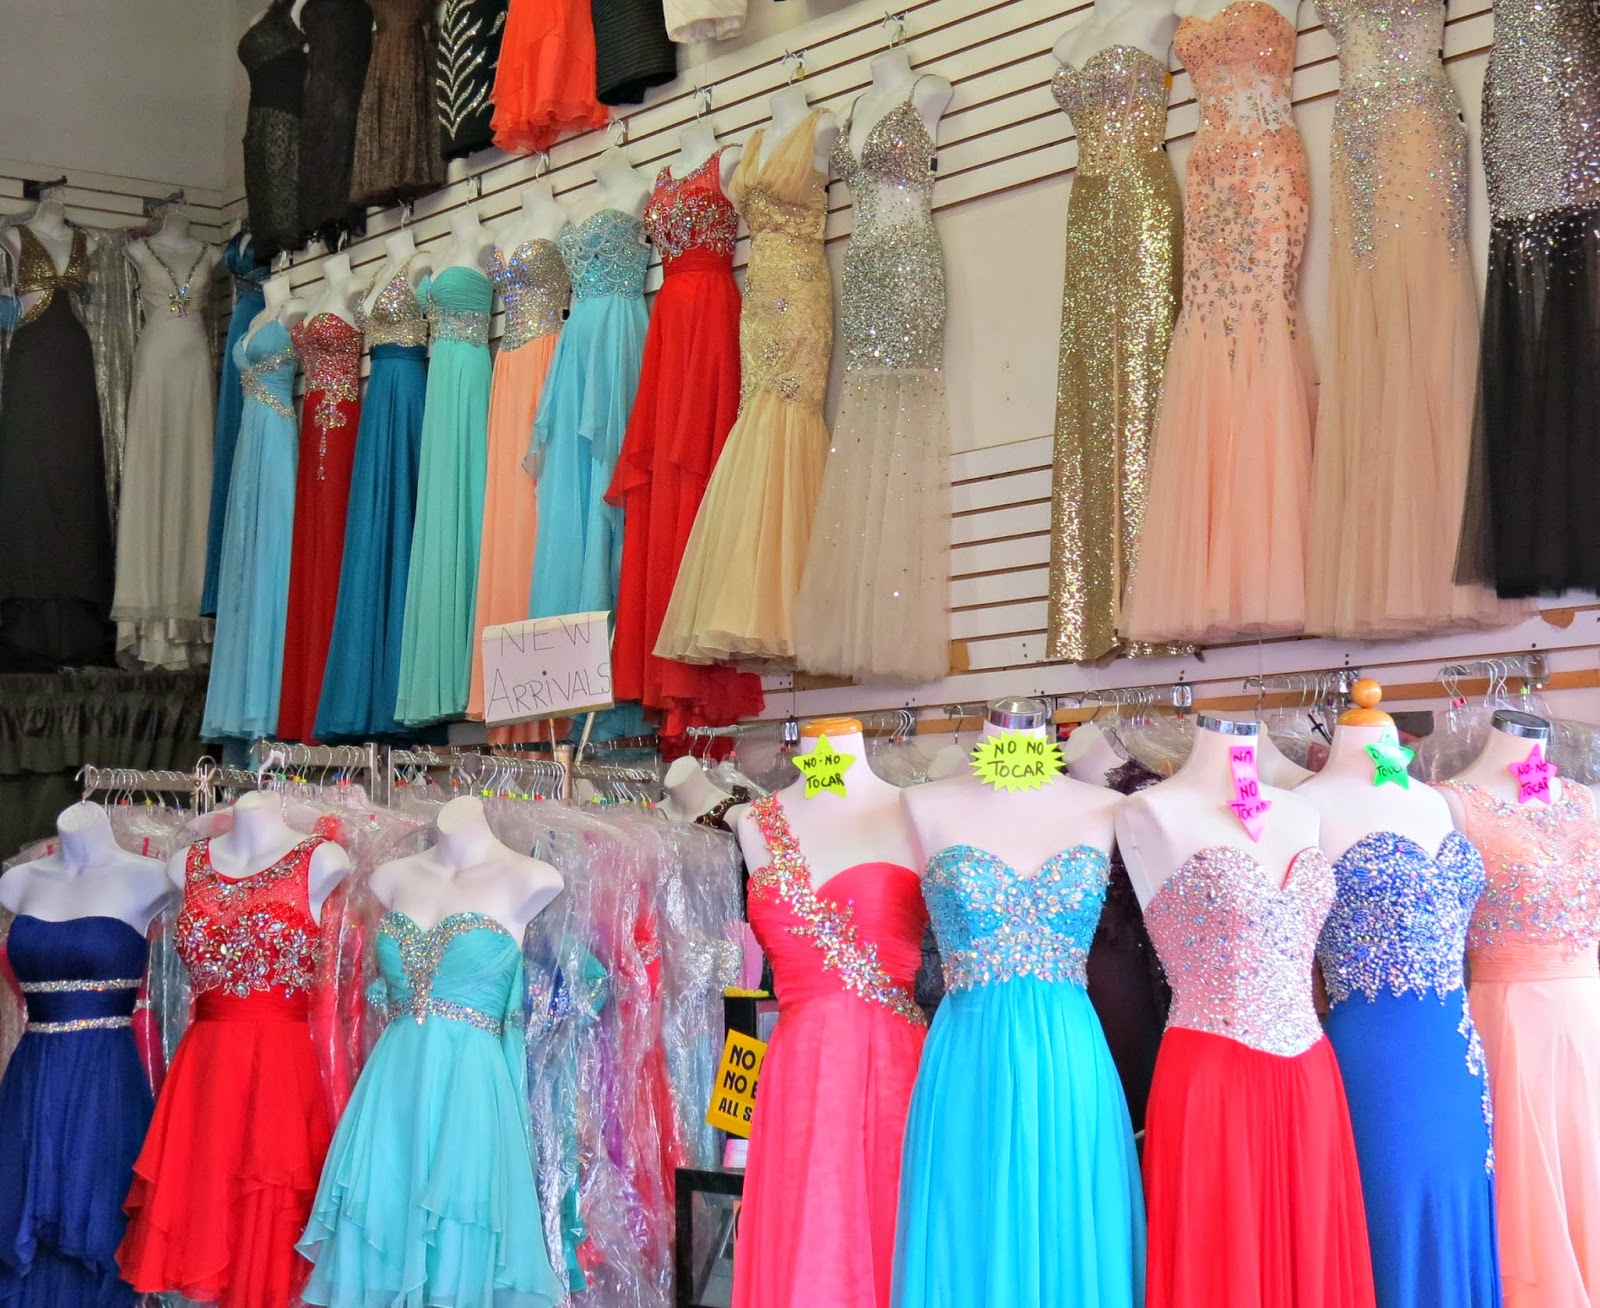 Wholesale clothing stores in los angeles